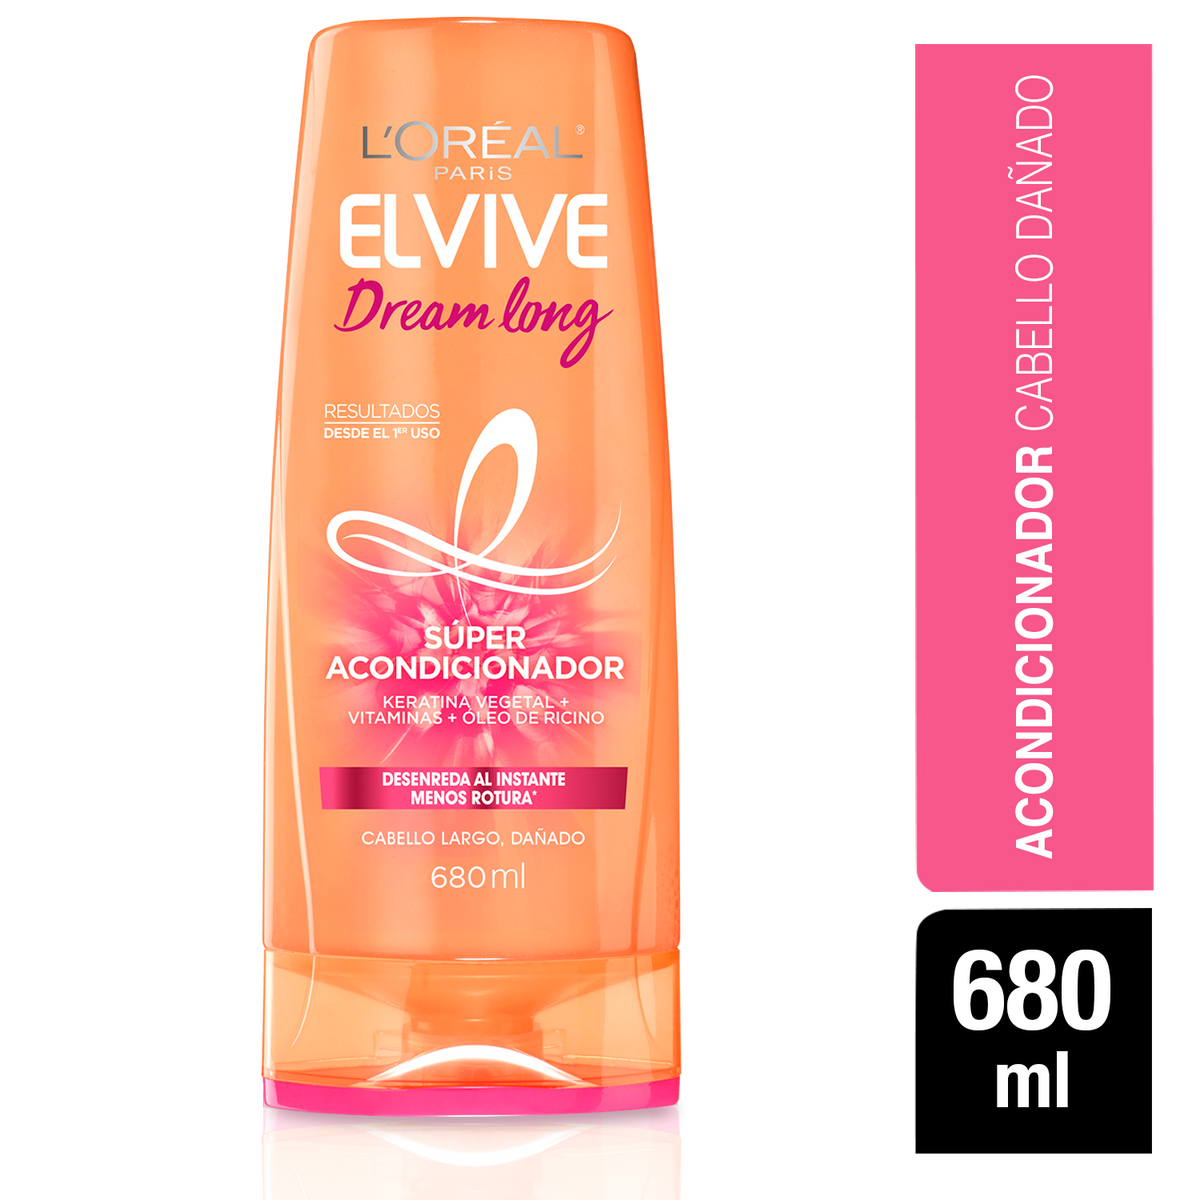 Elvive Dream Len grth Cond 680 ml